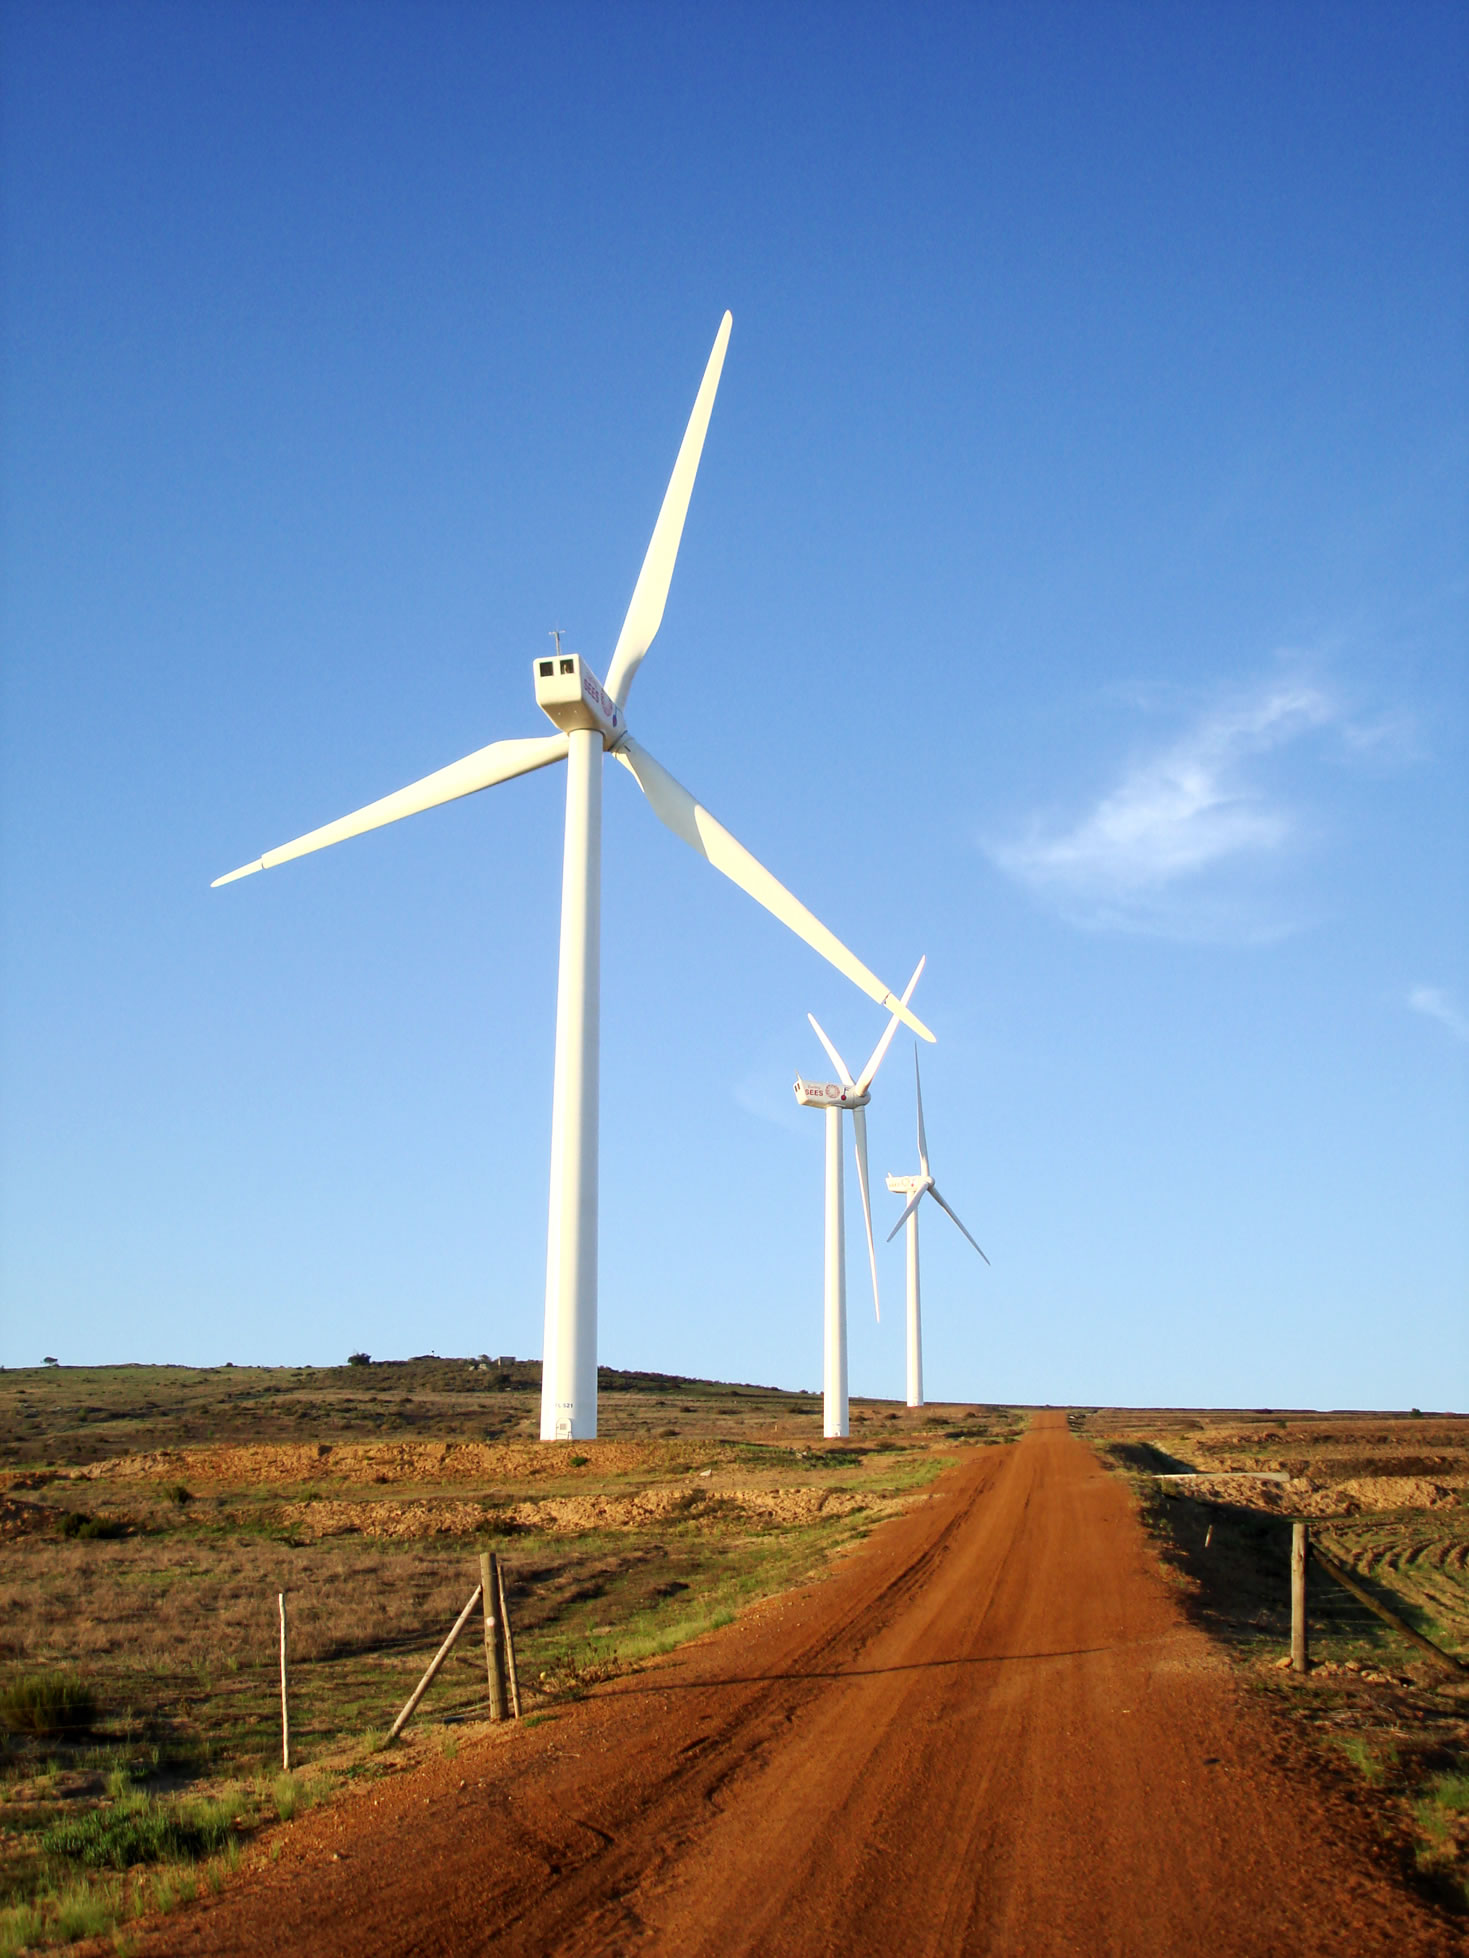 File:Darling Wind Farm.jpg - Wikimedia Commons